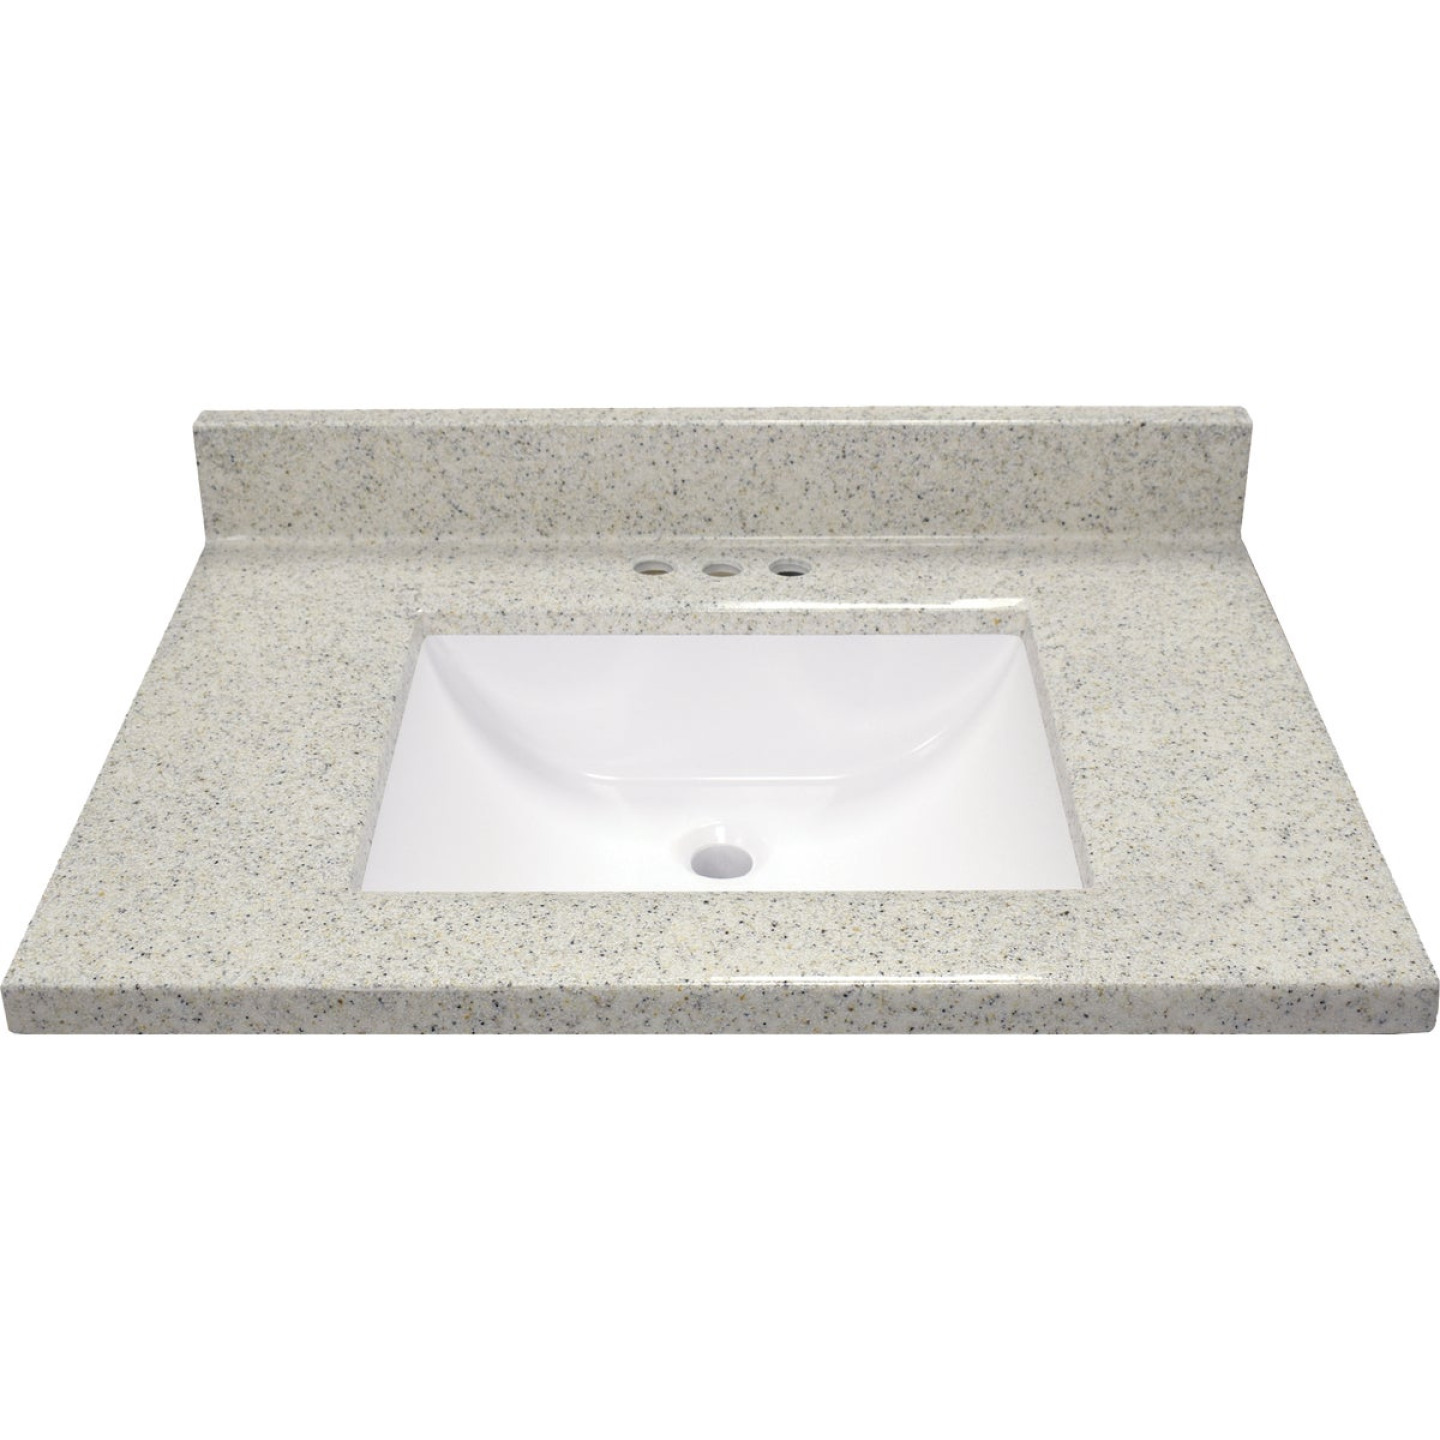 Modular Vanity Tops 31 In. W x 22 In. D Dune Cultured Marble Vanity Top with Rectangular Wave Bowl Image 2